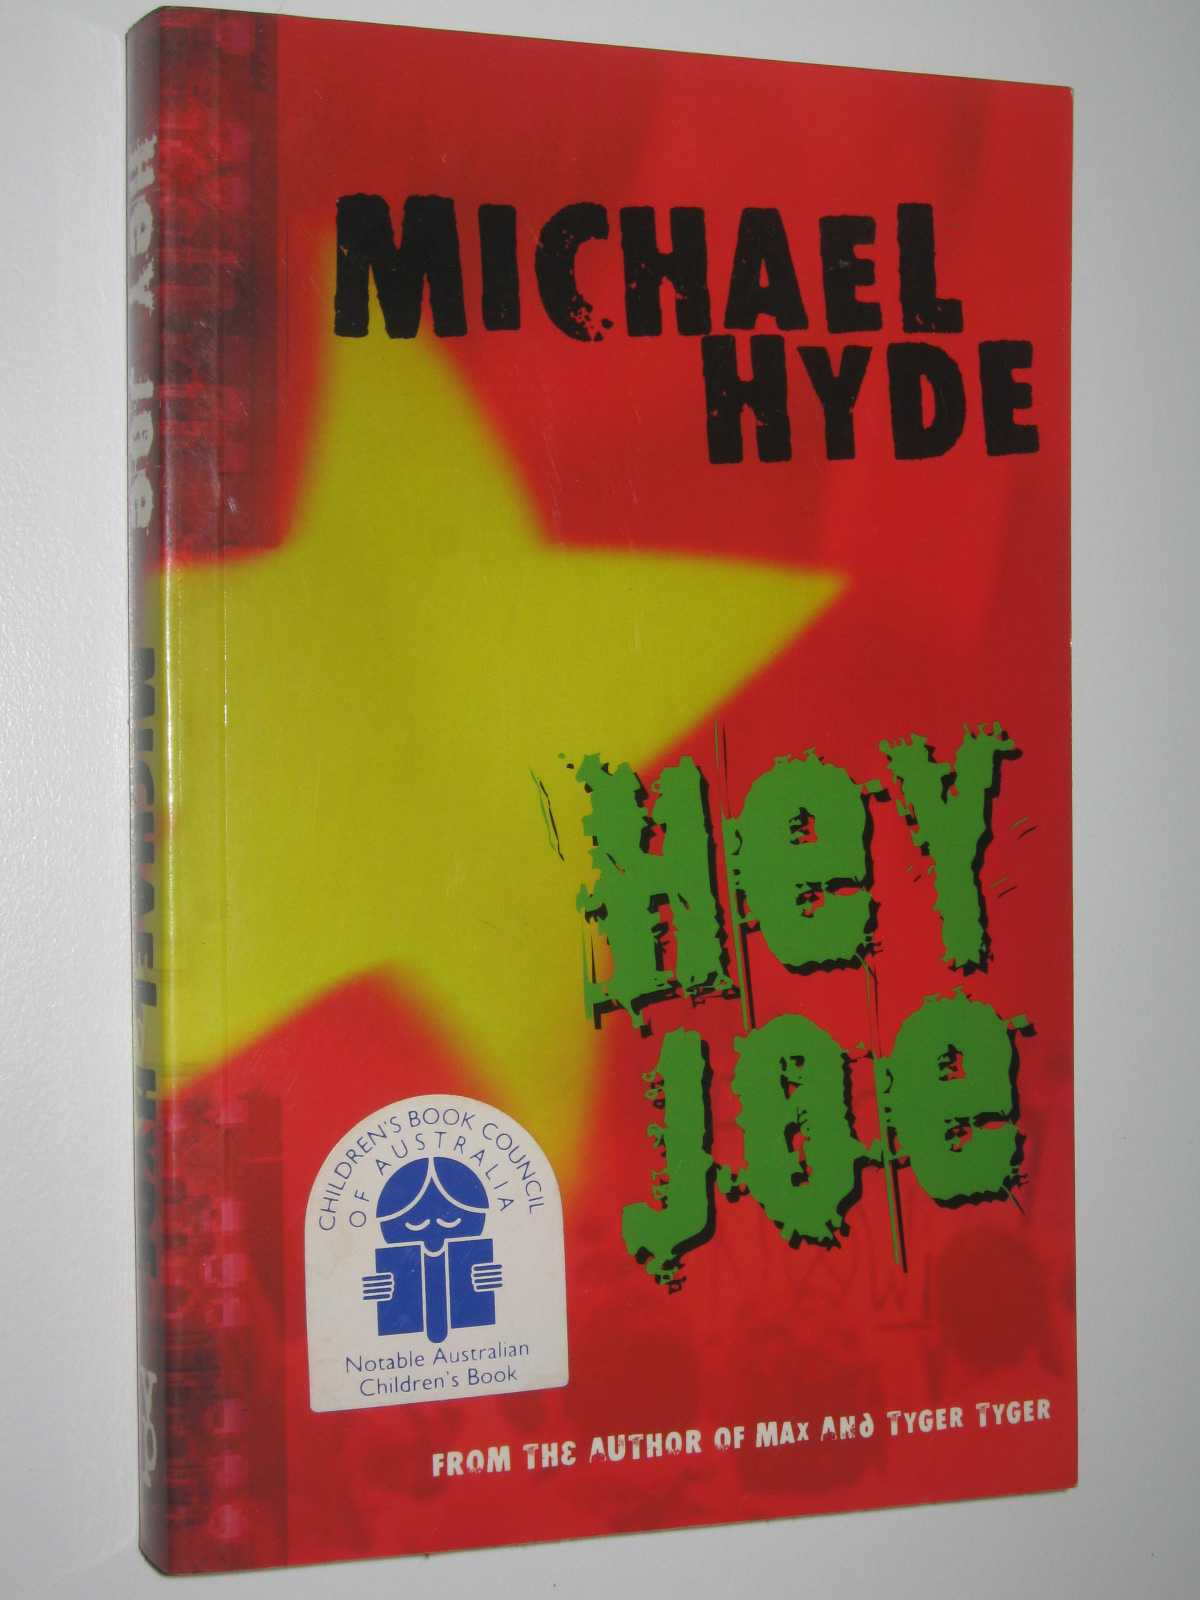 Hey Joe, Hyde, Michael